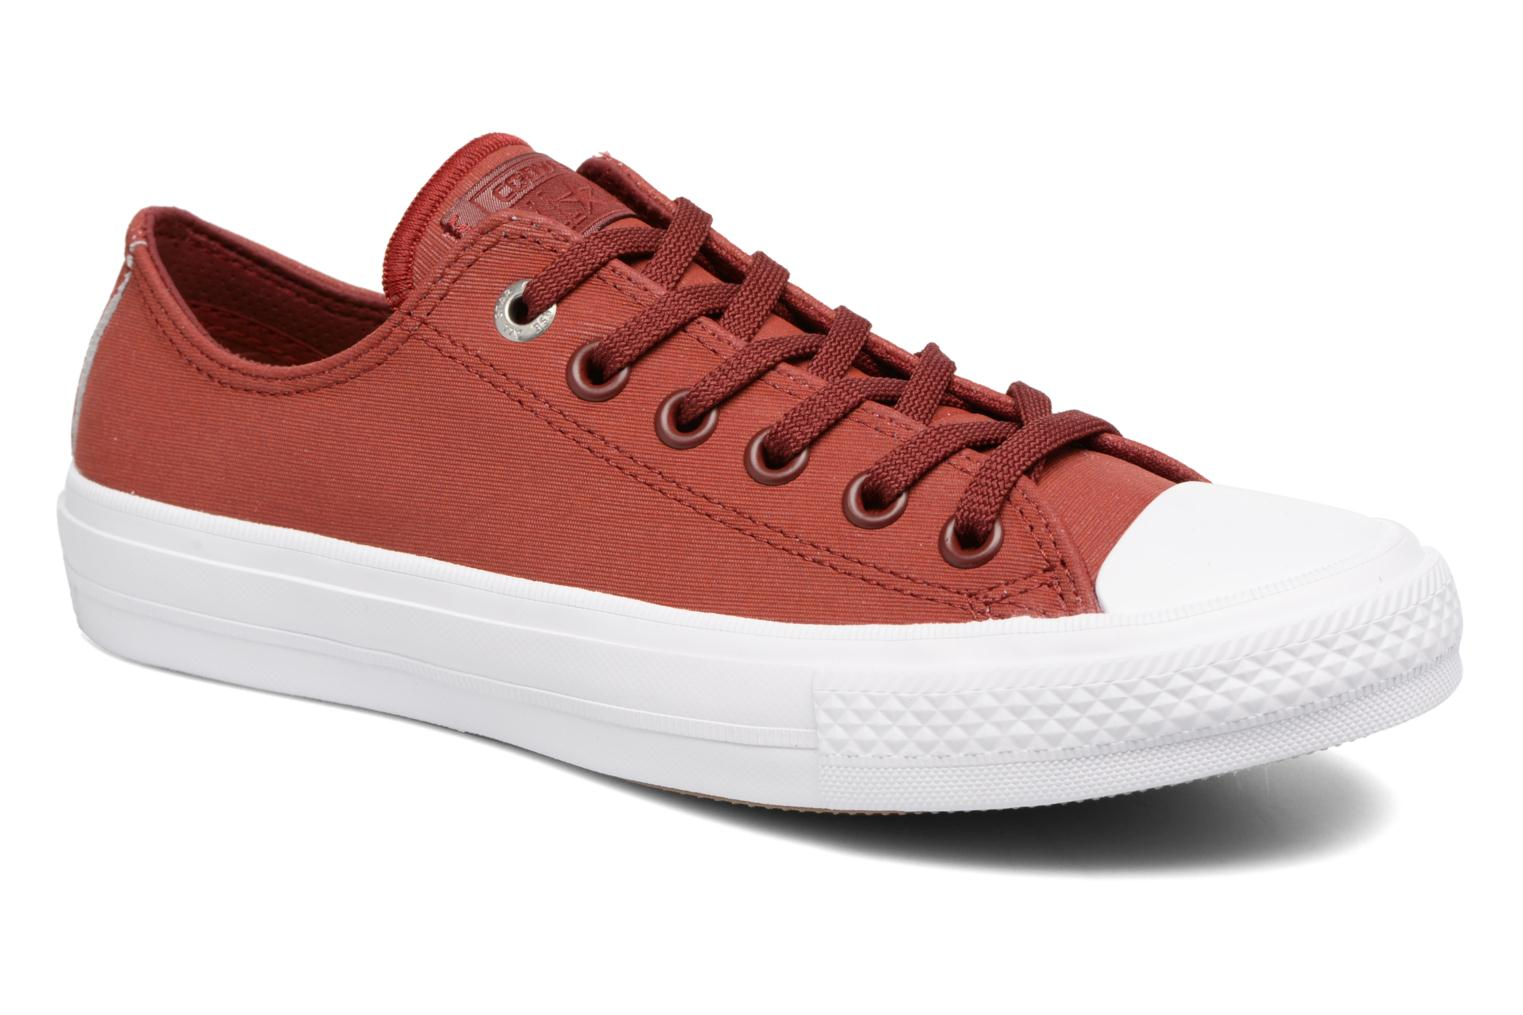 Chuck II Two-Tone Leather Ox W by Converse